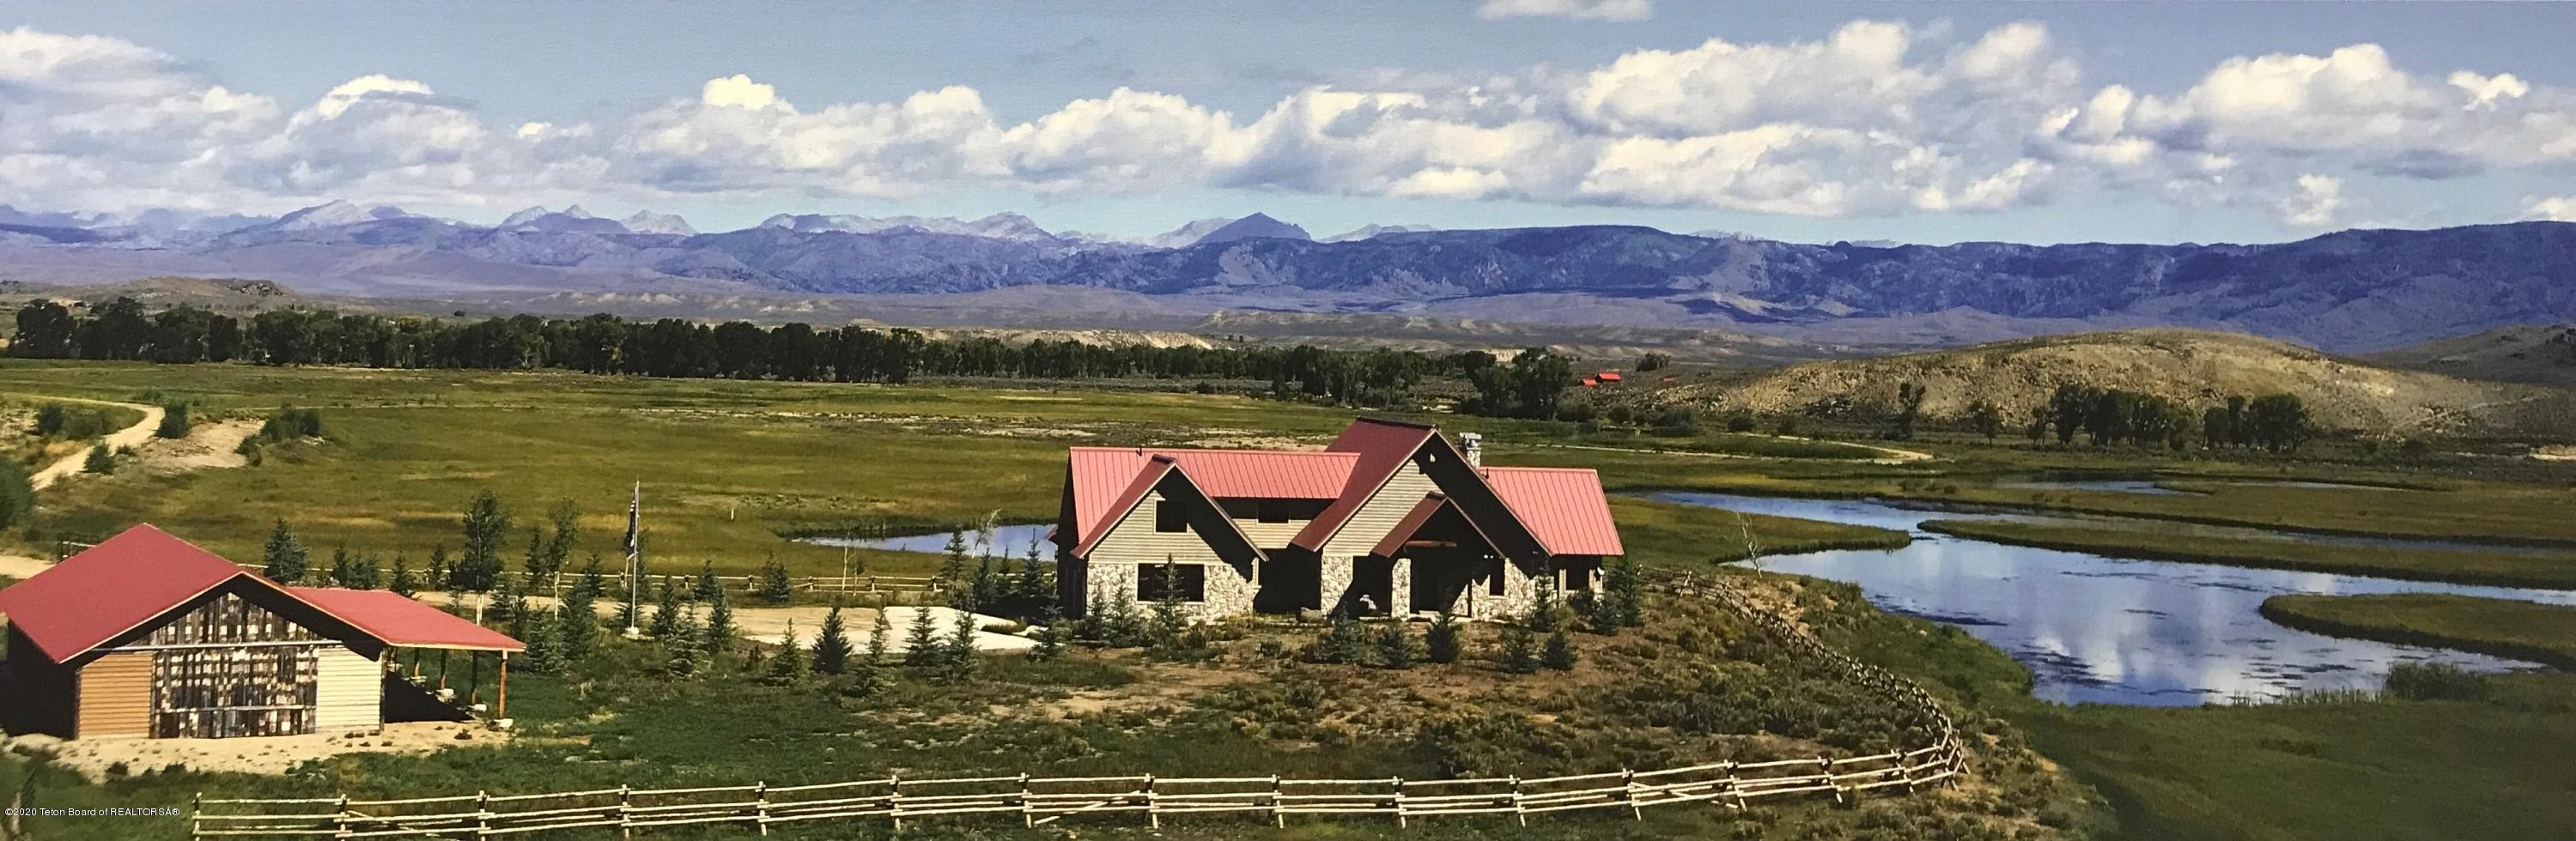 139 grable ln boulder, wy a luxury ranch farm for sale in boulder, wyoming property id 20-166 christie s international real estate